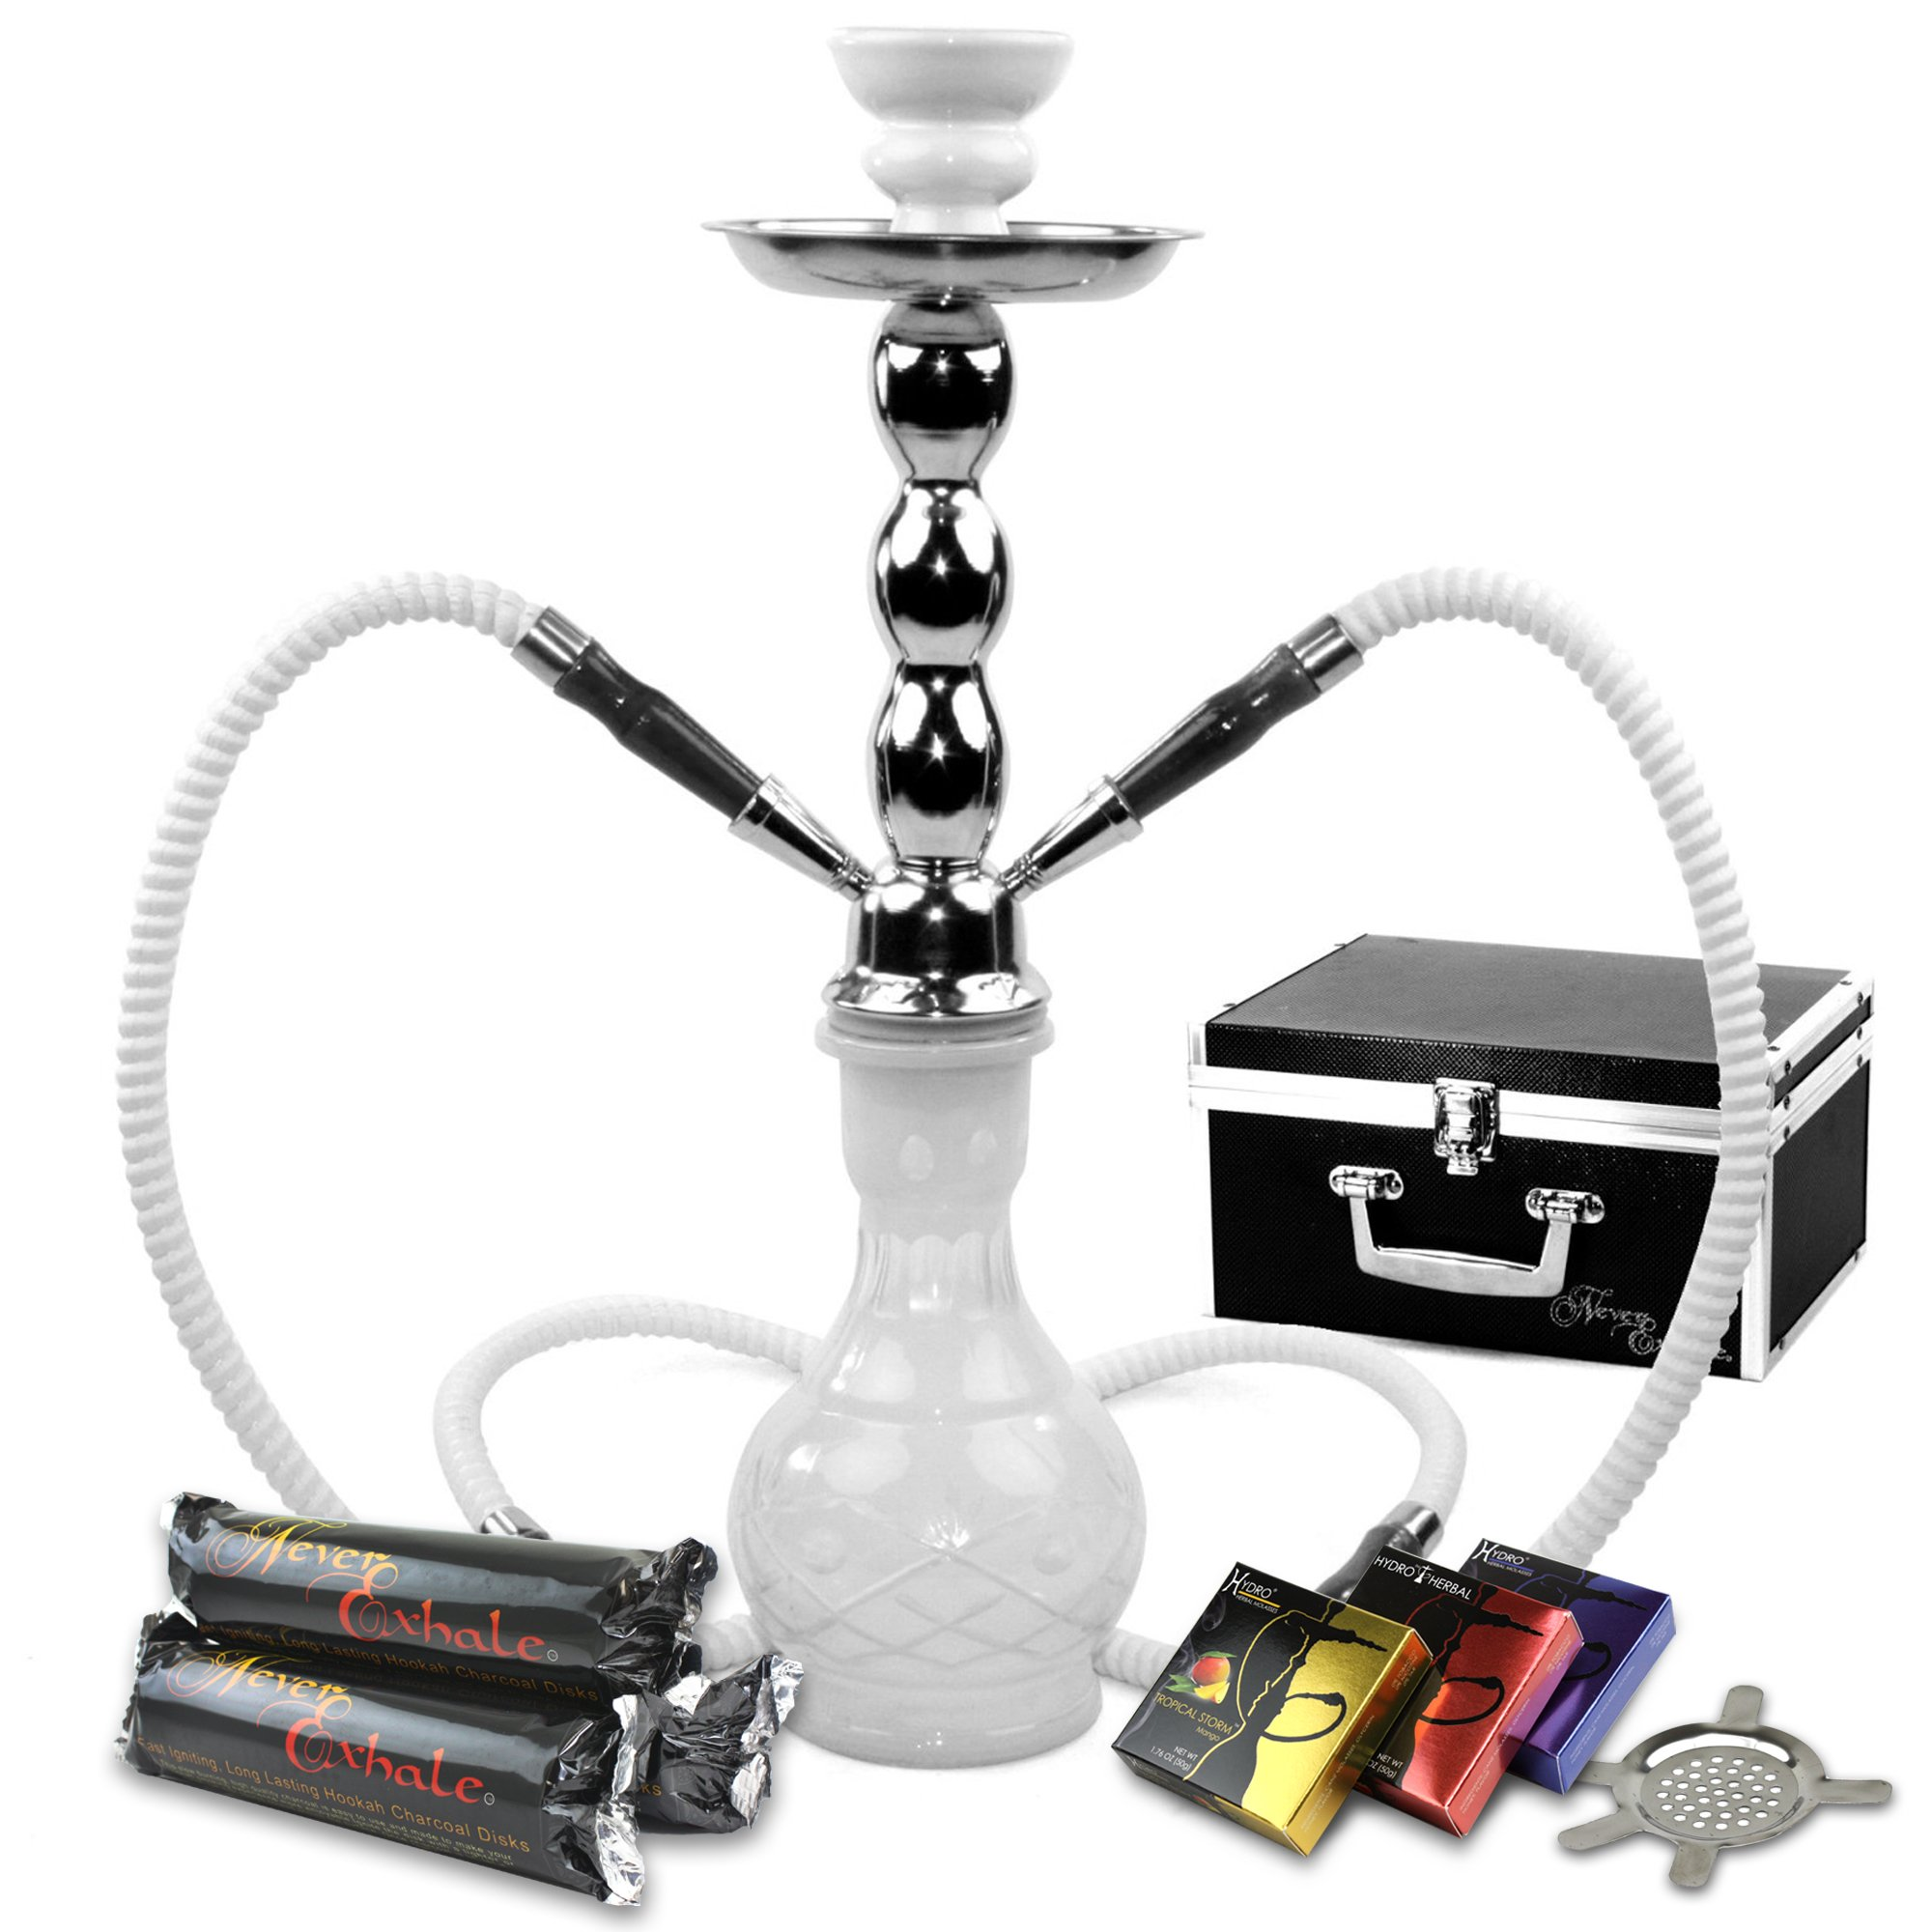 GSTAR Starter Series: 18'' 2 Hose Hookah Combo Kit Set w/NeverXhale Charcoal, Hydro Herbal Molasses, and Screen (Diamond Etched White)